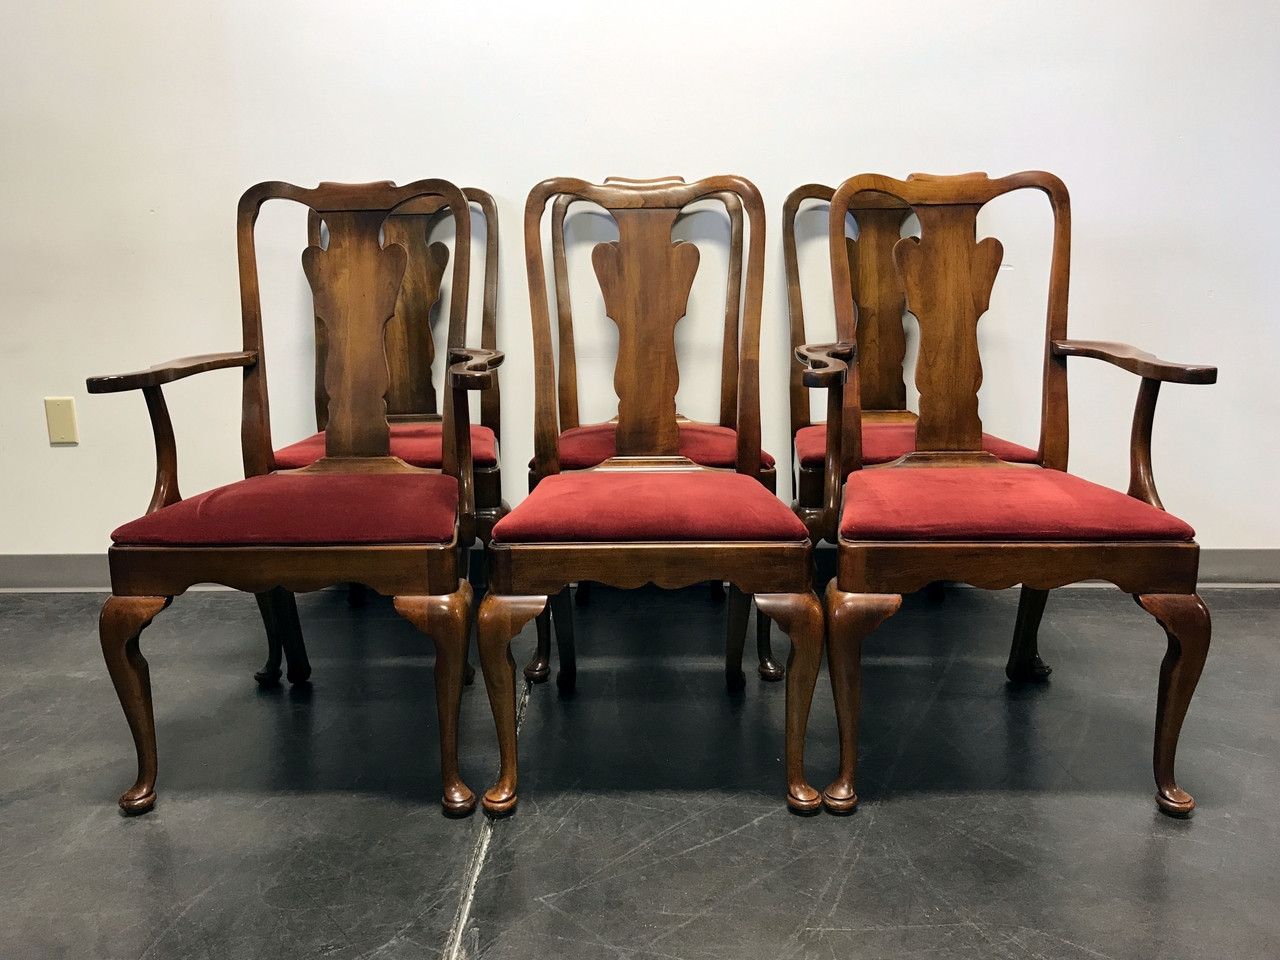 SOLD OUT   STATTON Oxford Antique Cherry Queen Anne Dining Chairs   Set Of 6